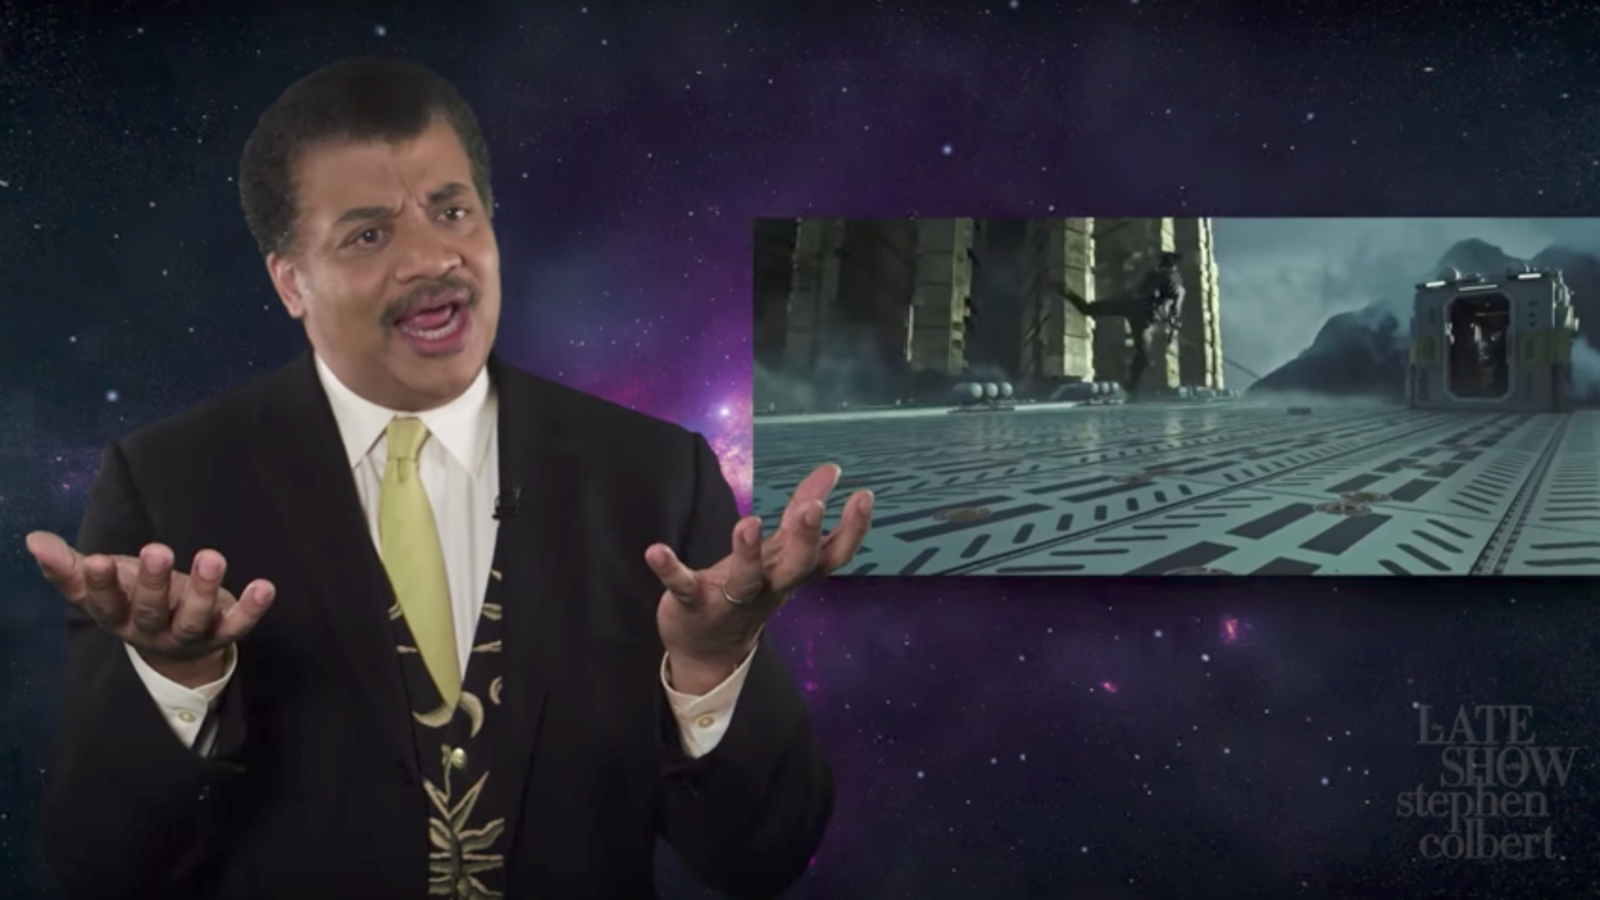 Neil deGrasse Tyson Is Back to Ruin More Summer Flicks With His Constant Thinking